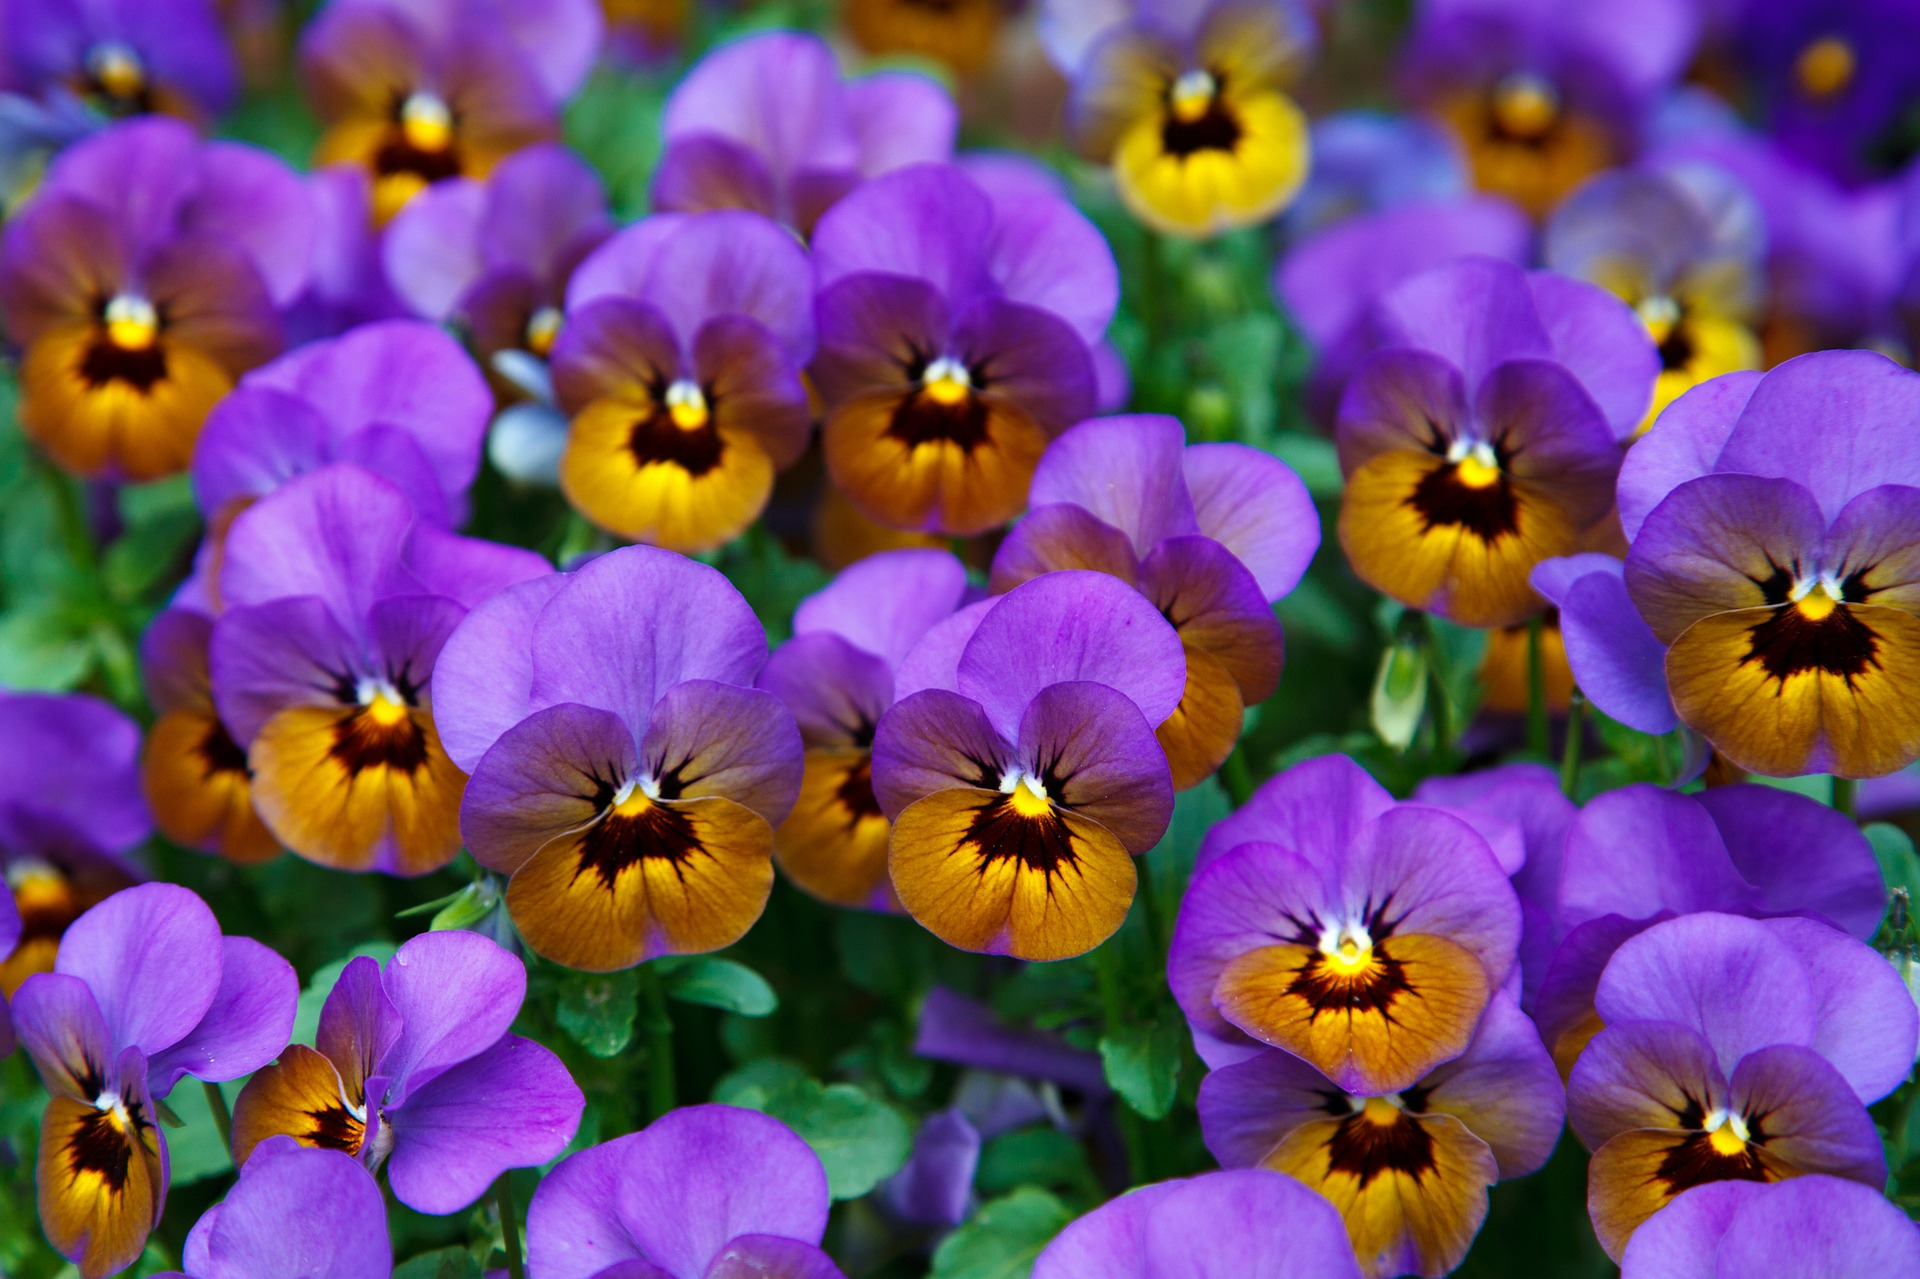 Pansies in the Garden, Nature, Pansy, Garden, Fragrance, HQ Photo